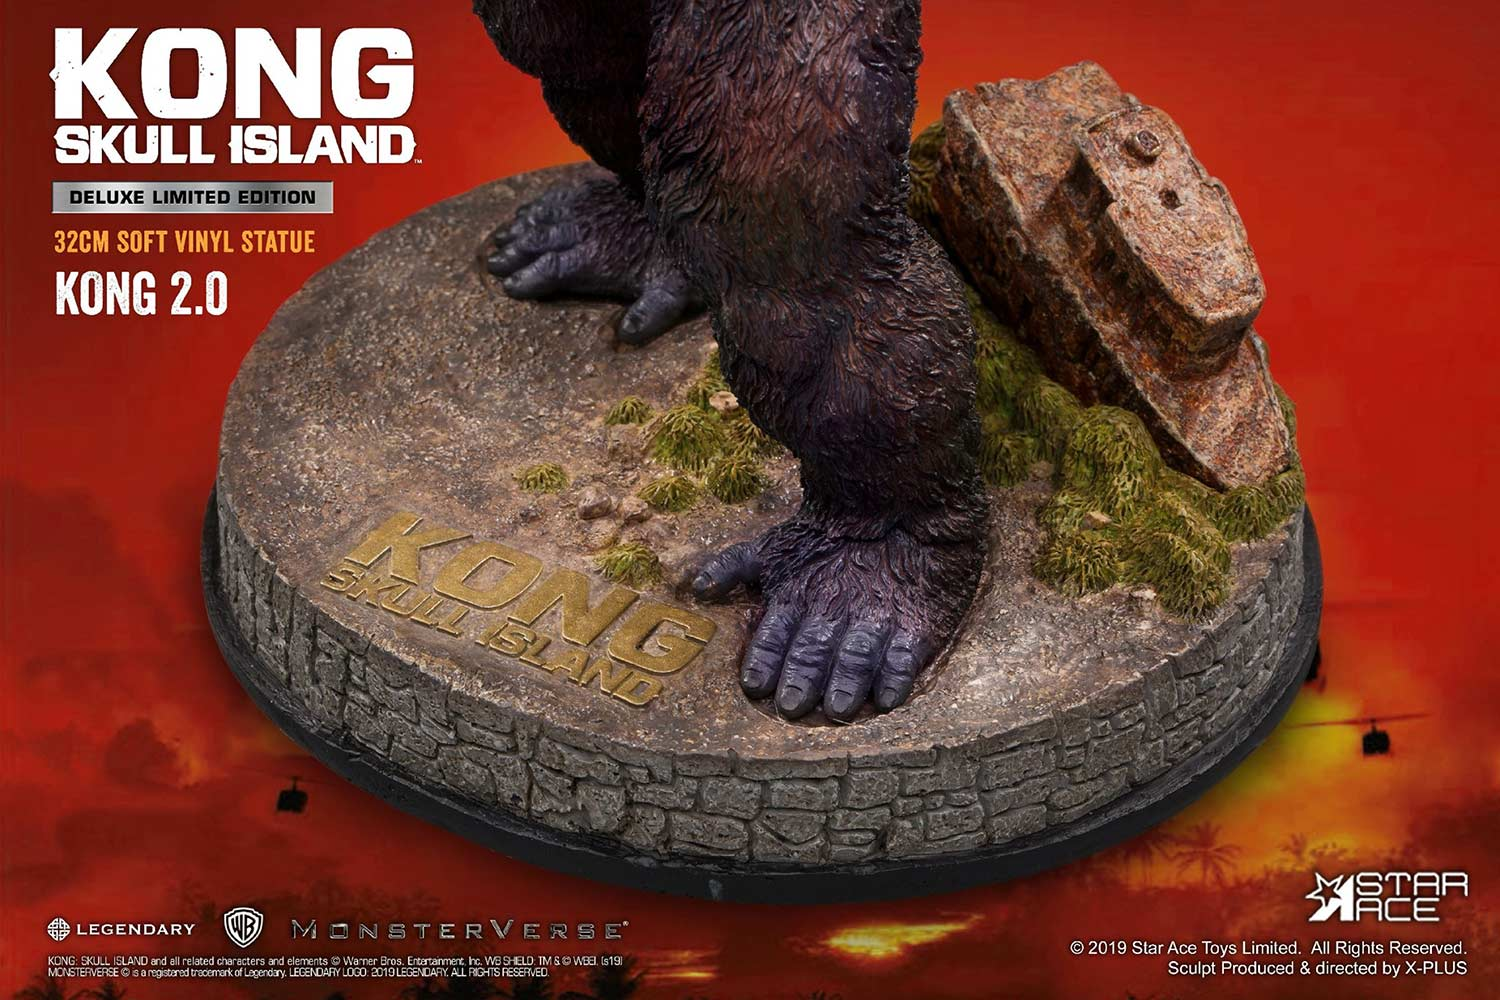 Close-up of the base from the Star Ace Kong 2.0 Deluxe Version.